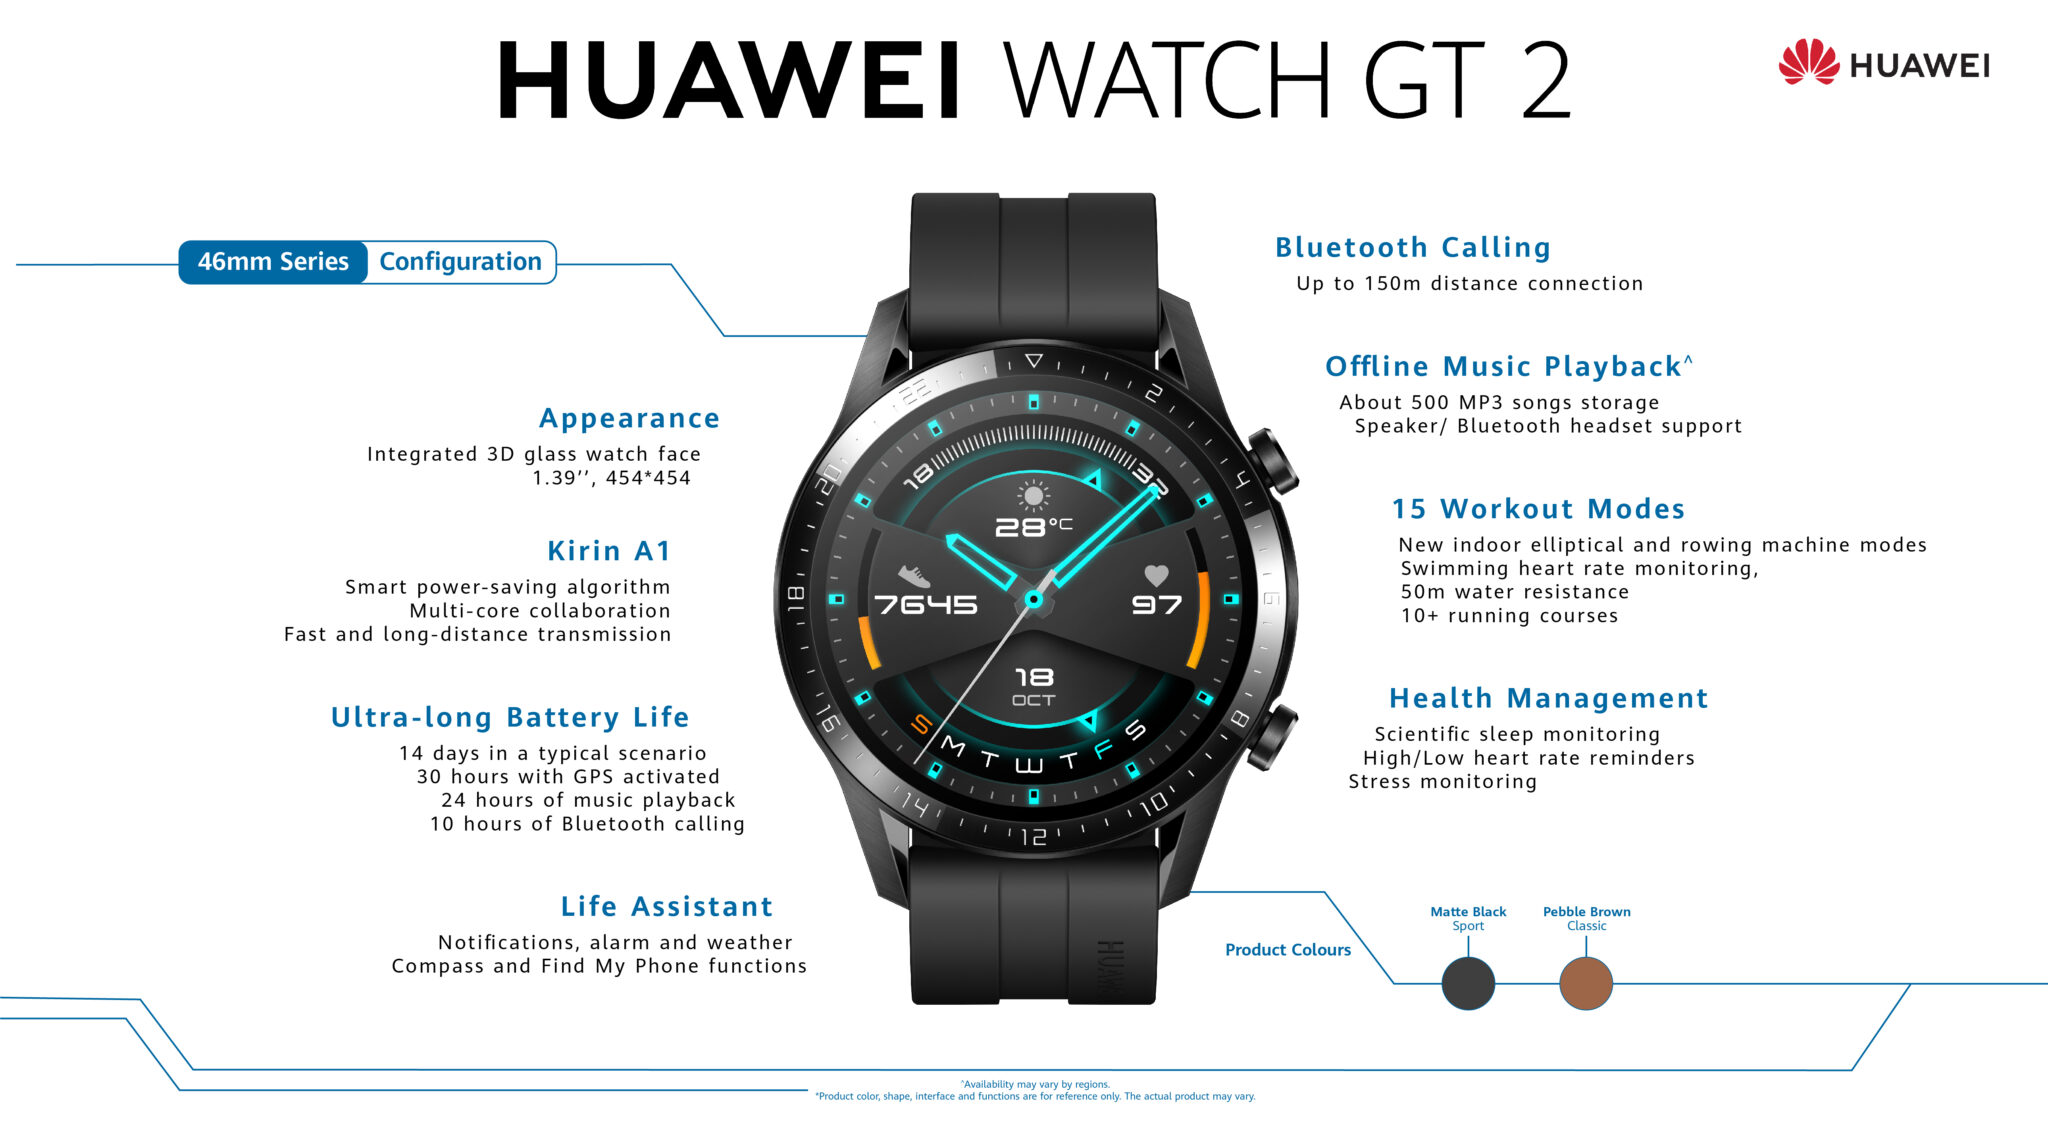 Huwaei Watch GT 2 schematic